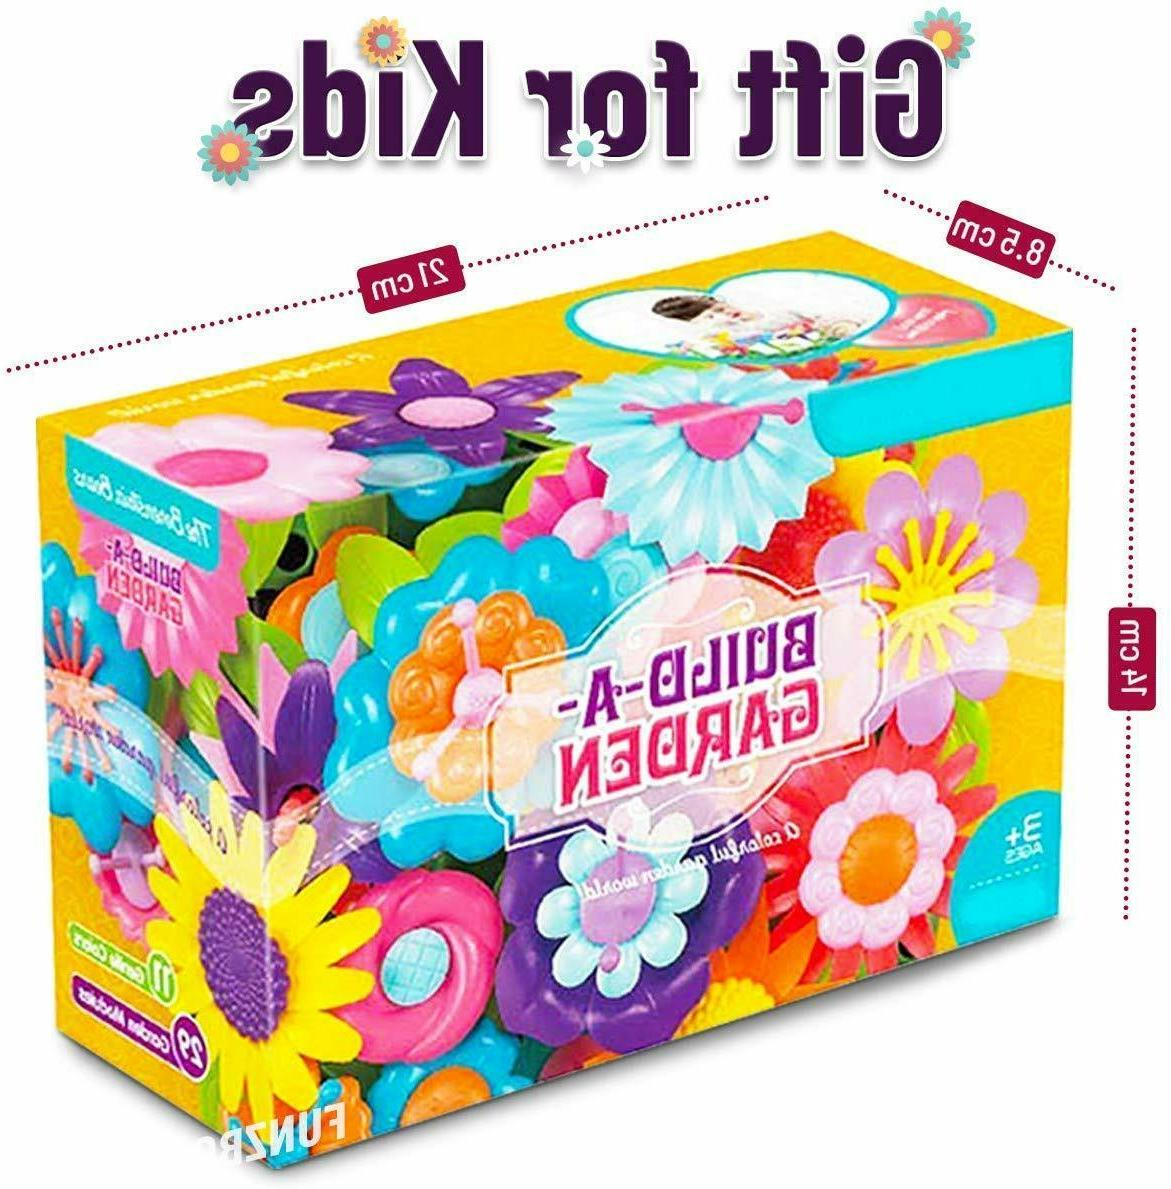 99 PCS Building Toys for Gift for Kids Activity